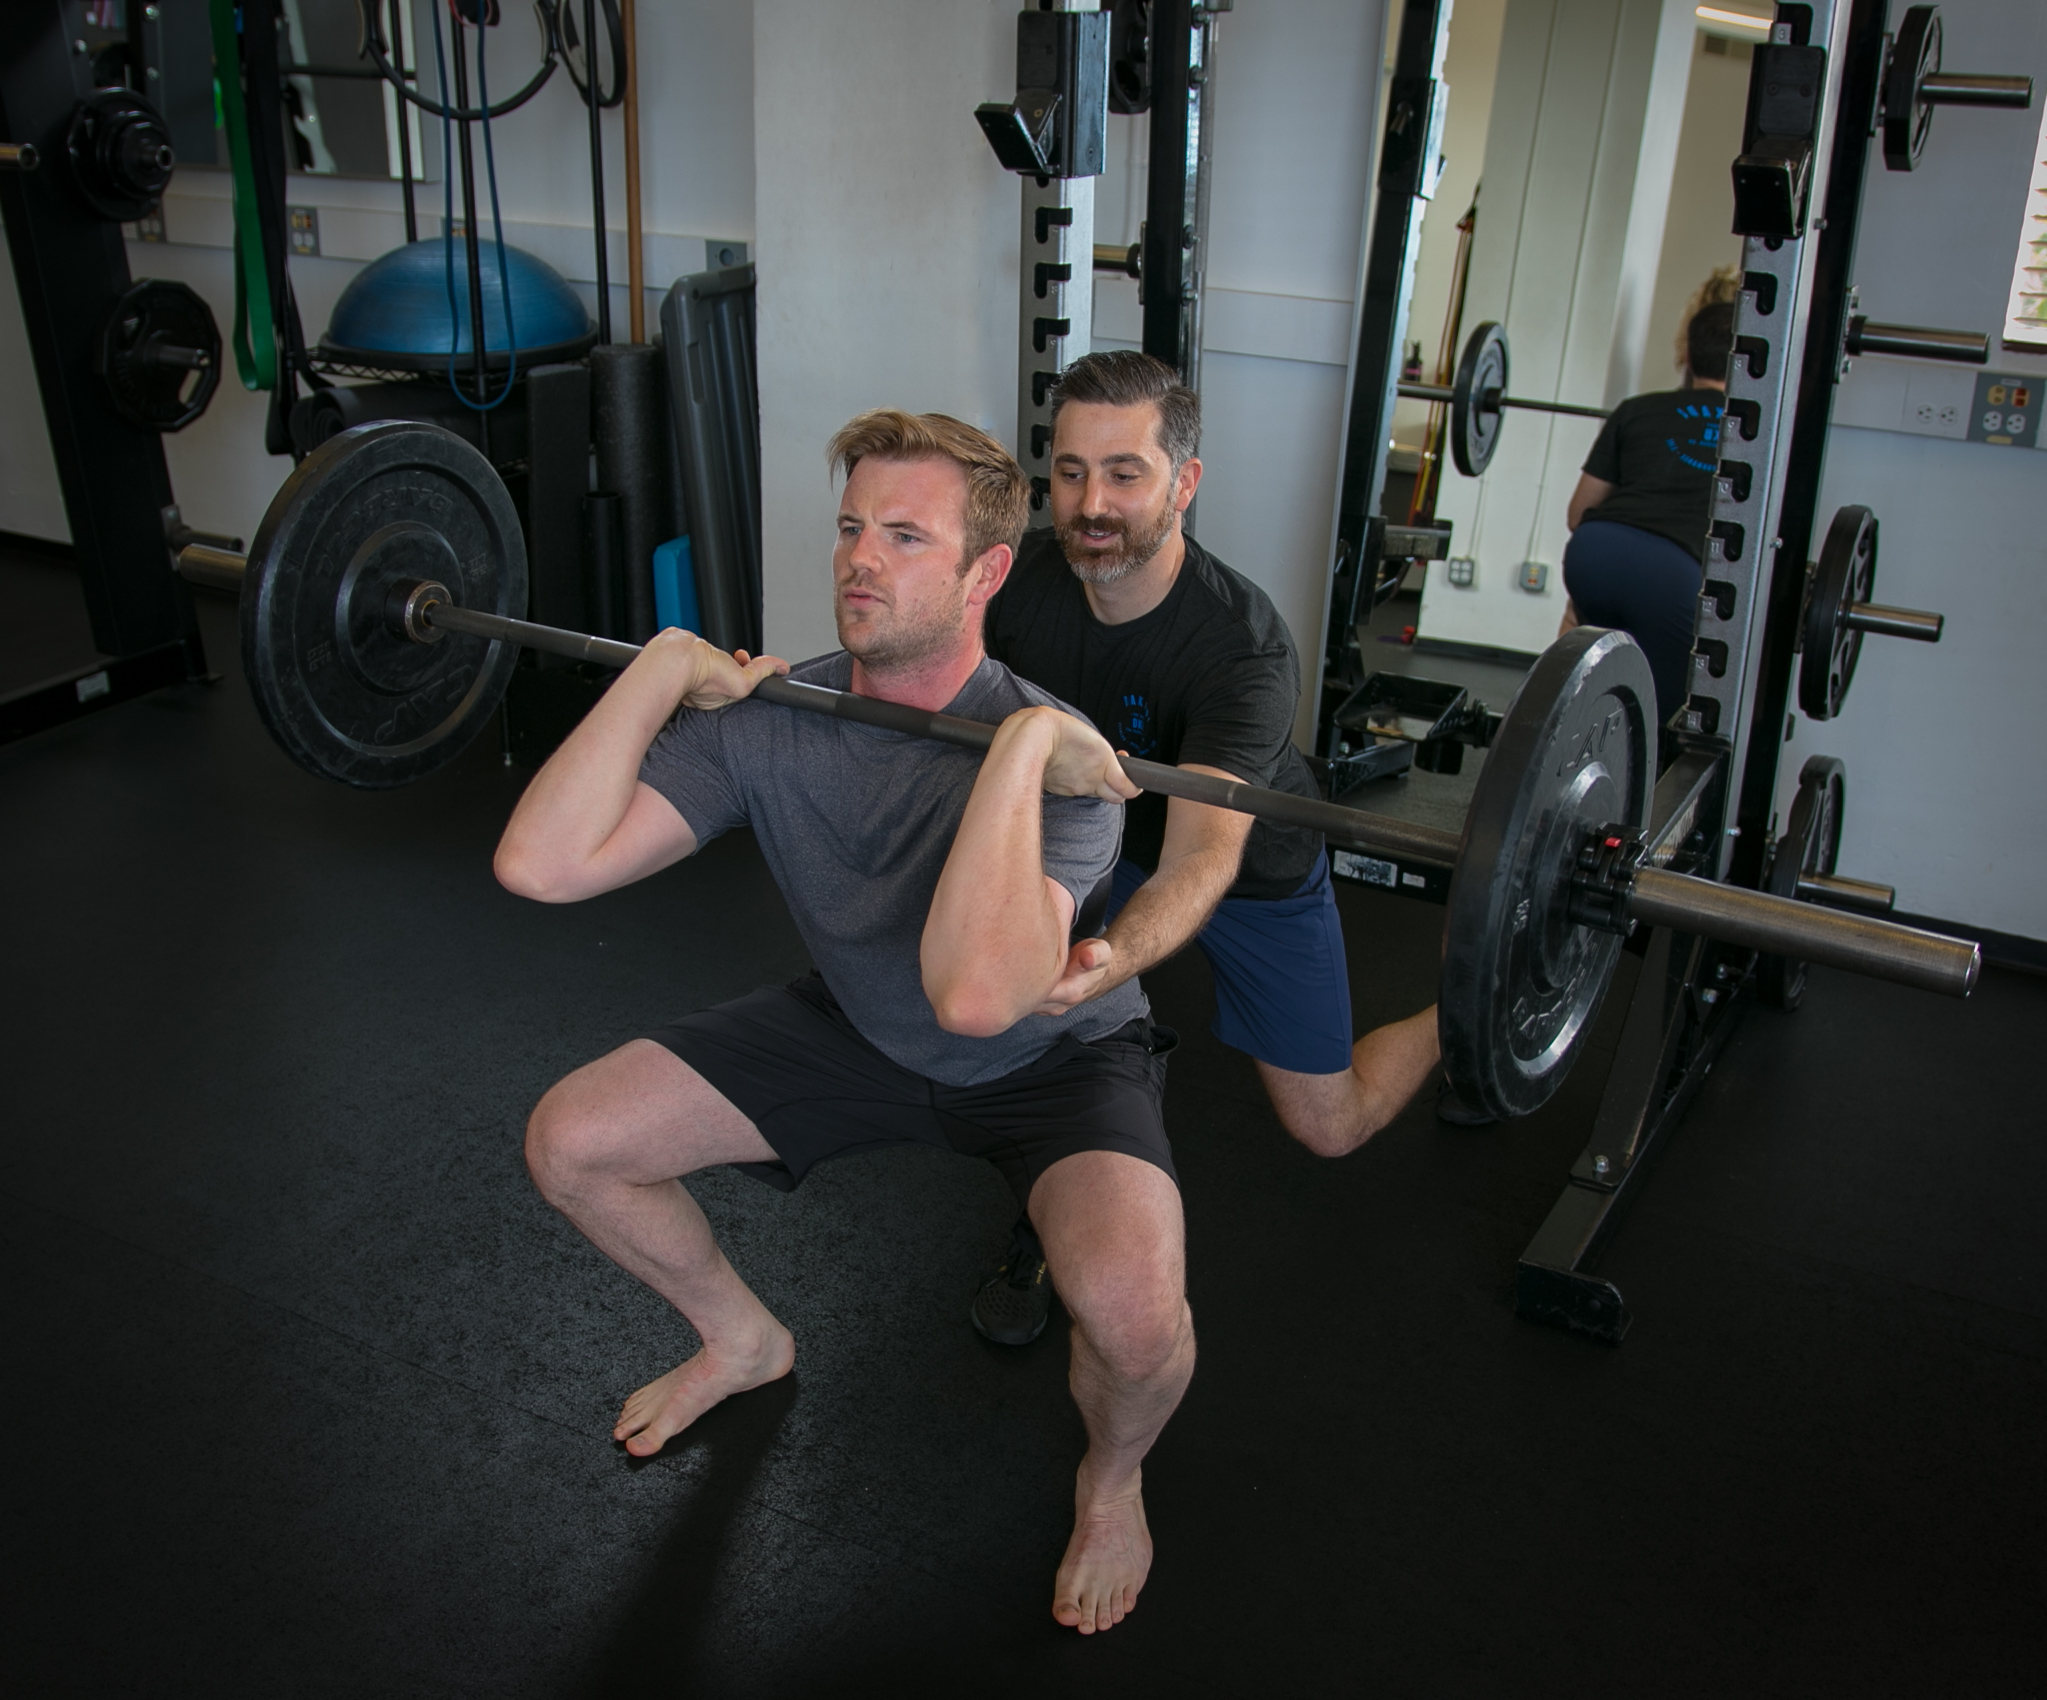 Jake Tipane , coaching his client on proper squat form.